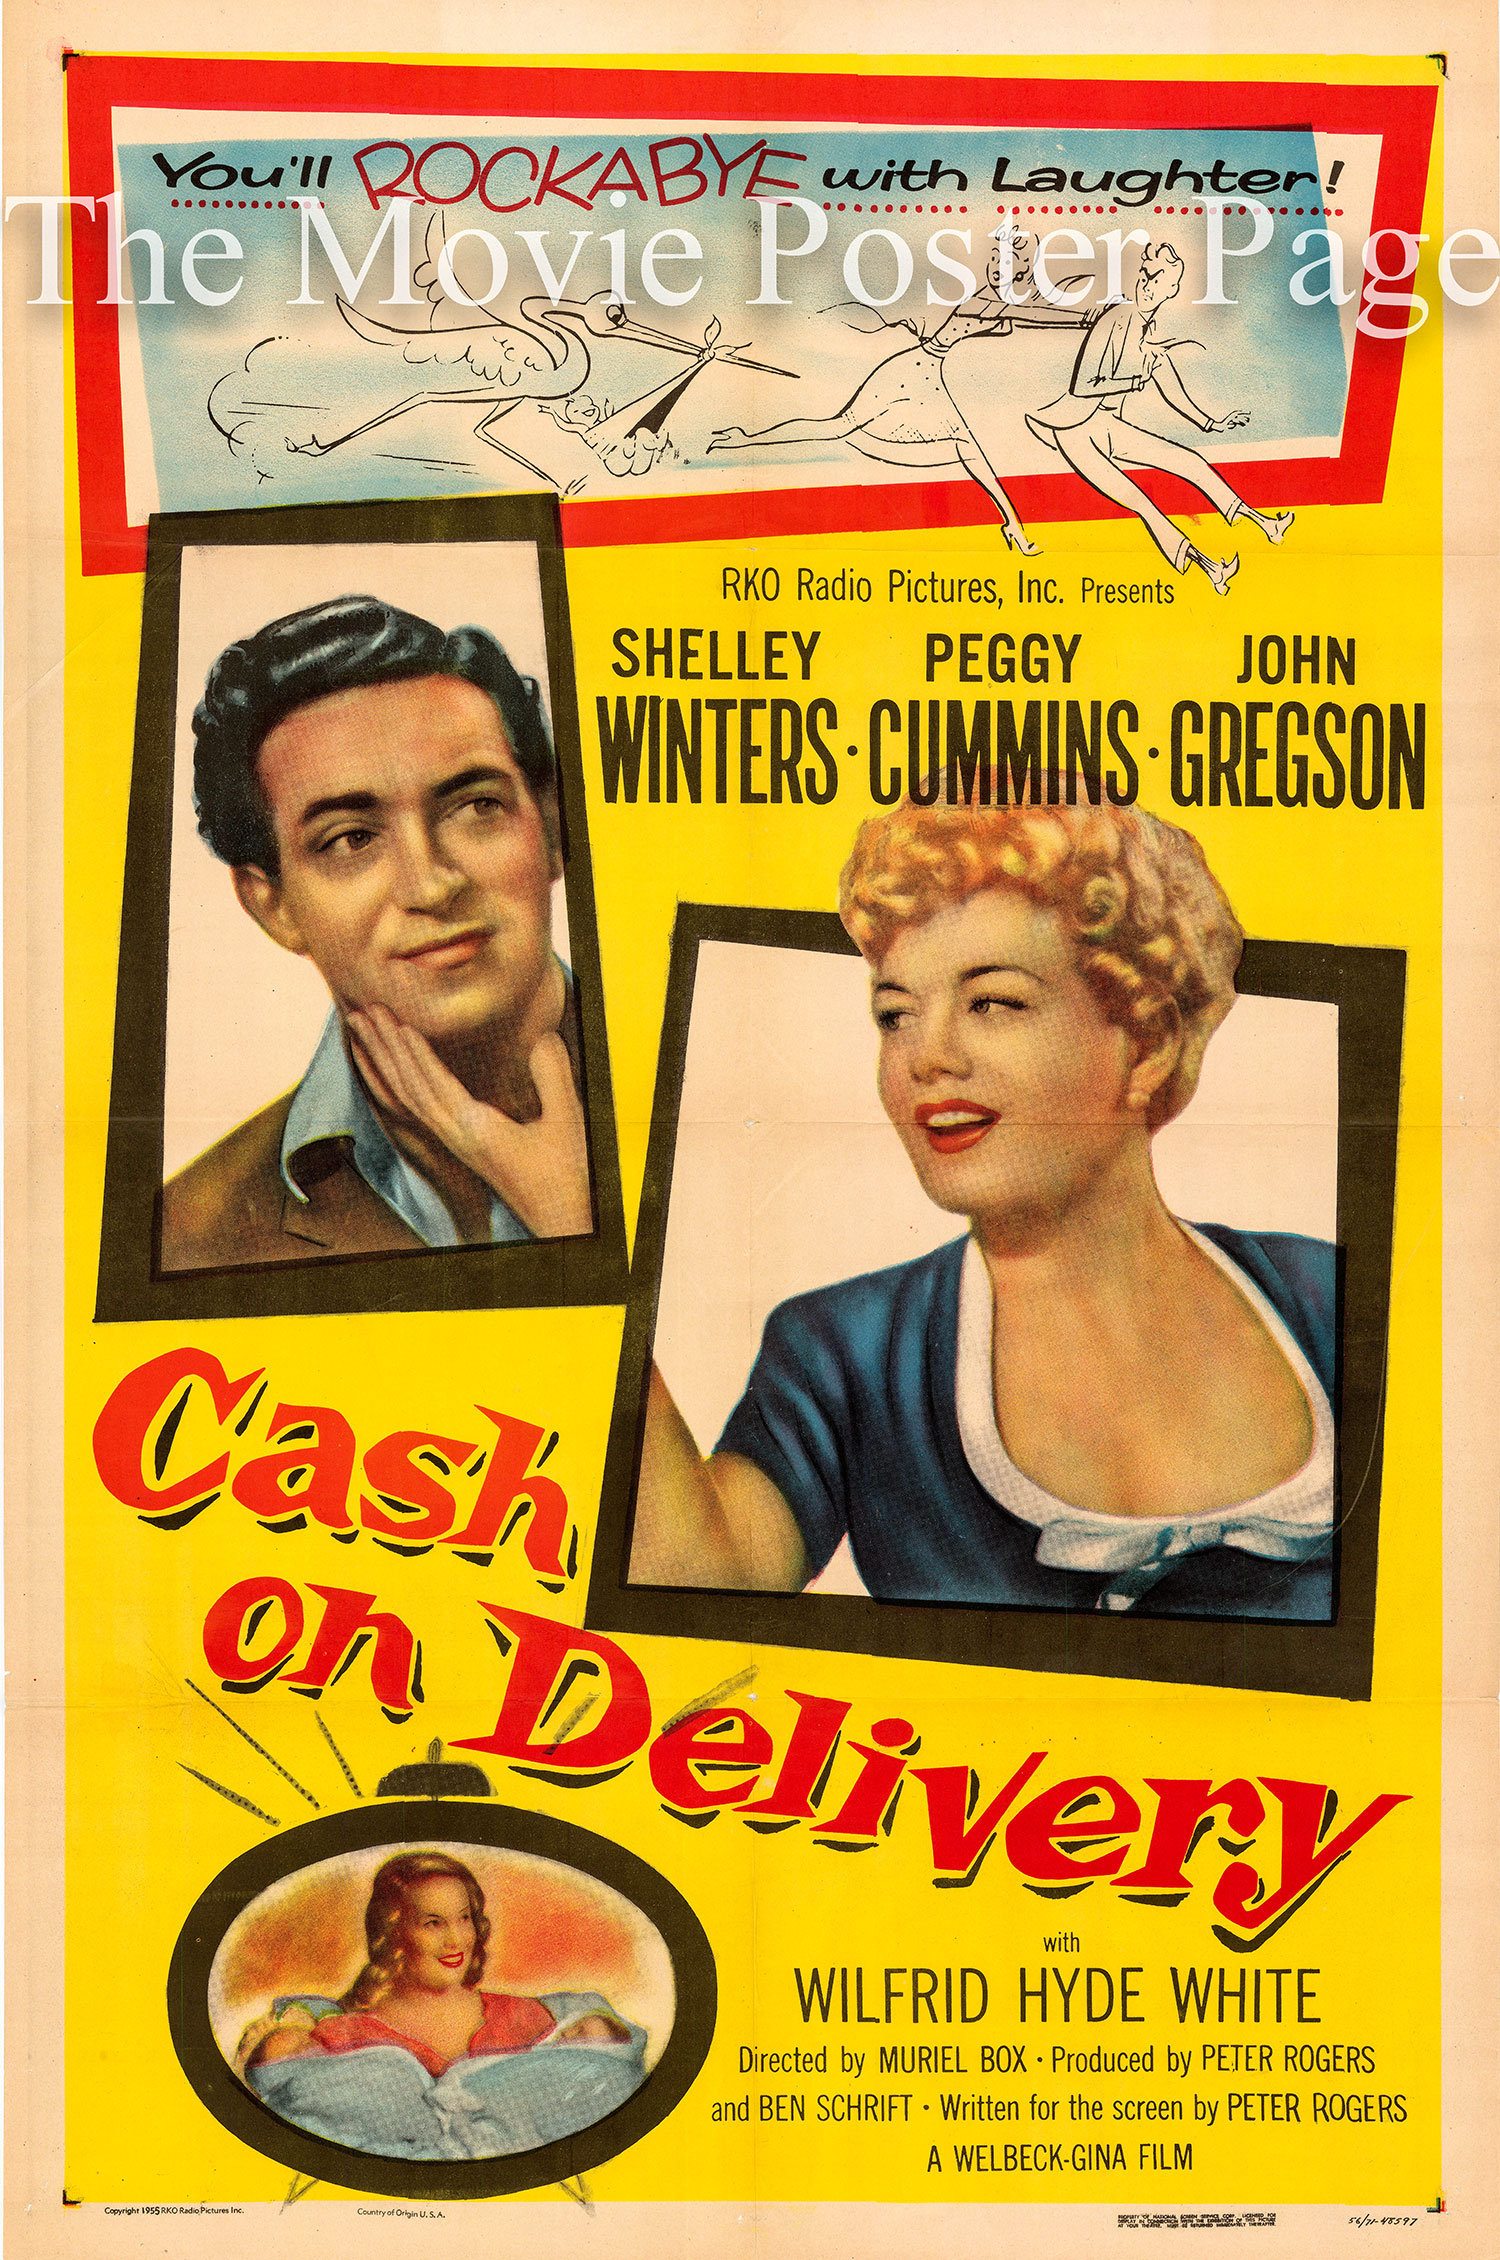 Pictured is a US one-sheet poster for the 1956 Muriel Box fielm Cash on Delivery starring Shelley Winters.